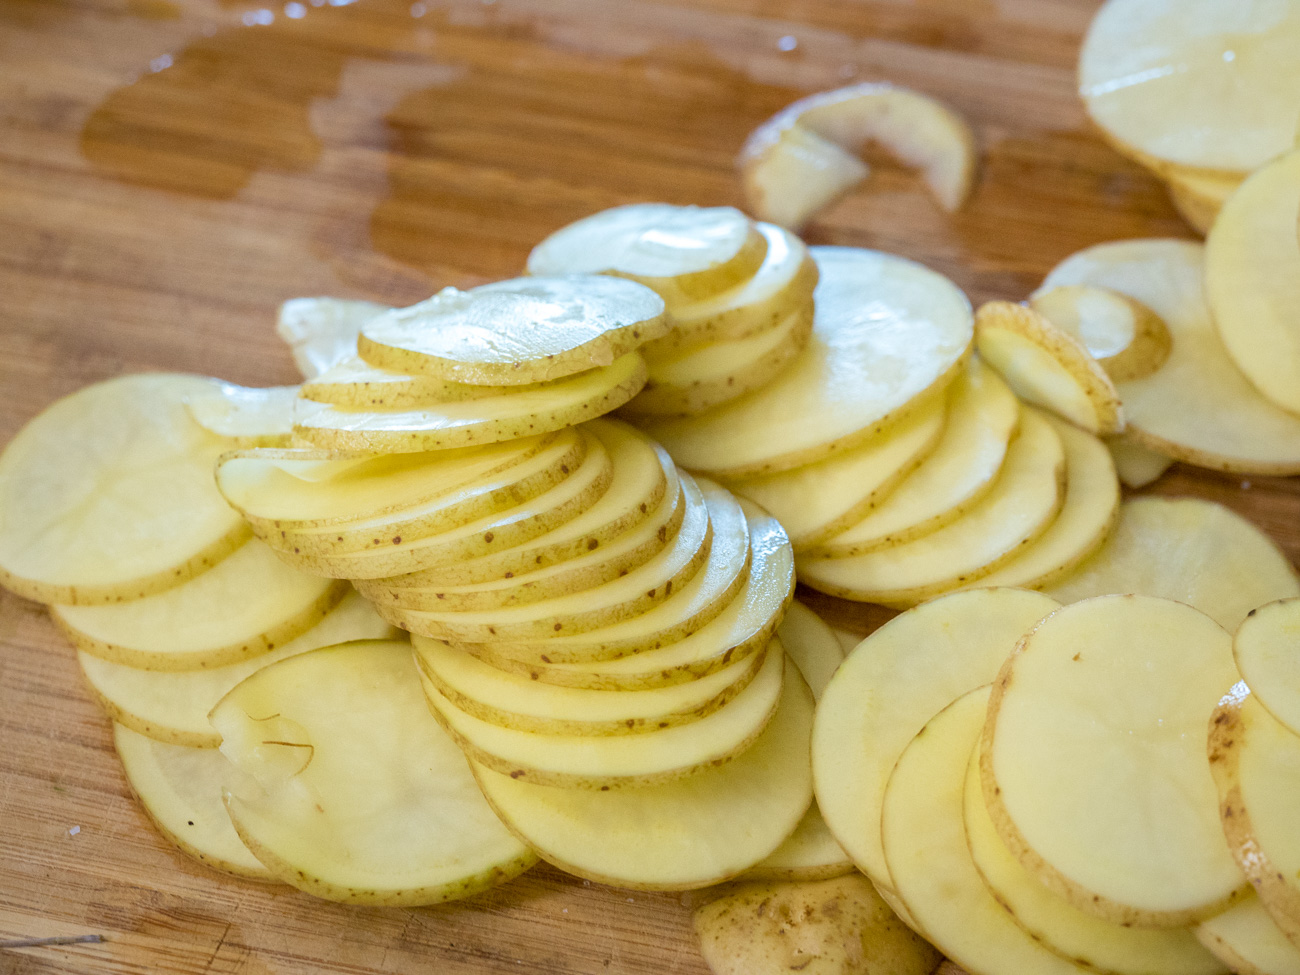 Use a mandoline to slice the potatoes thinly, or chop by hand into 1/8 inch thick slices.